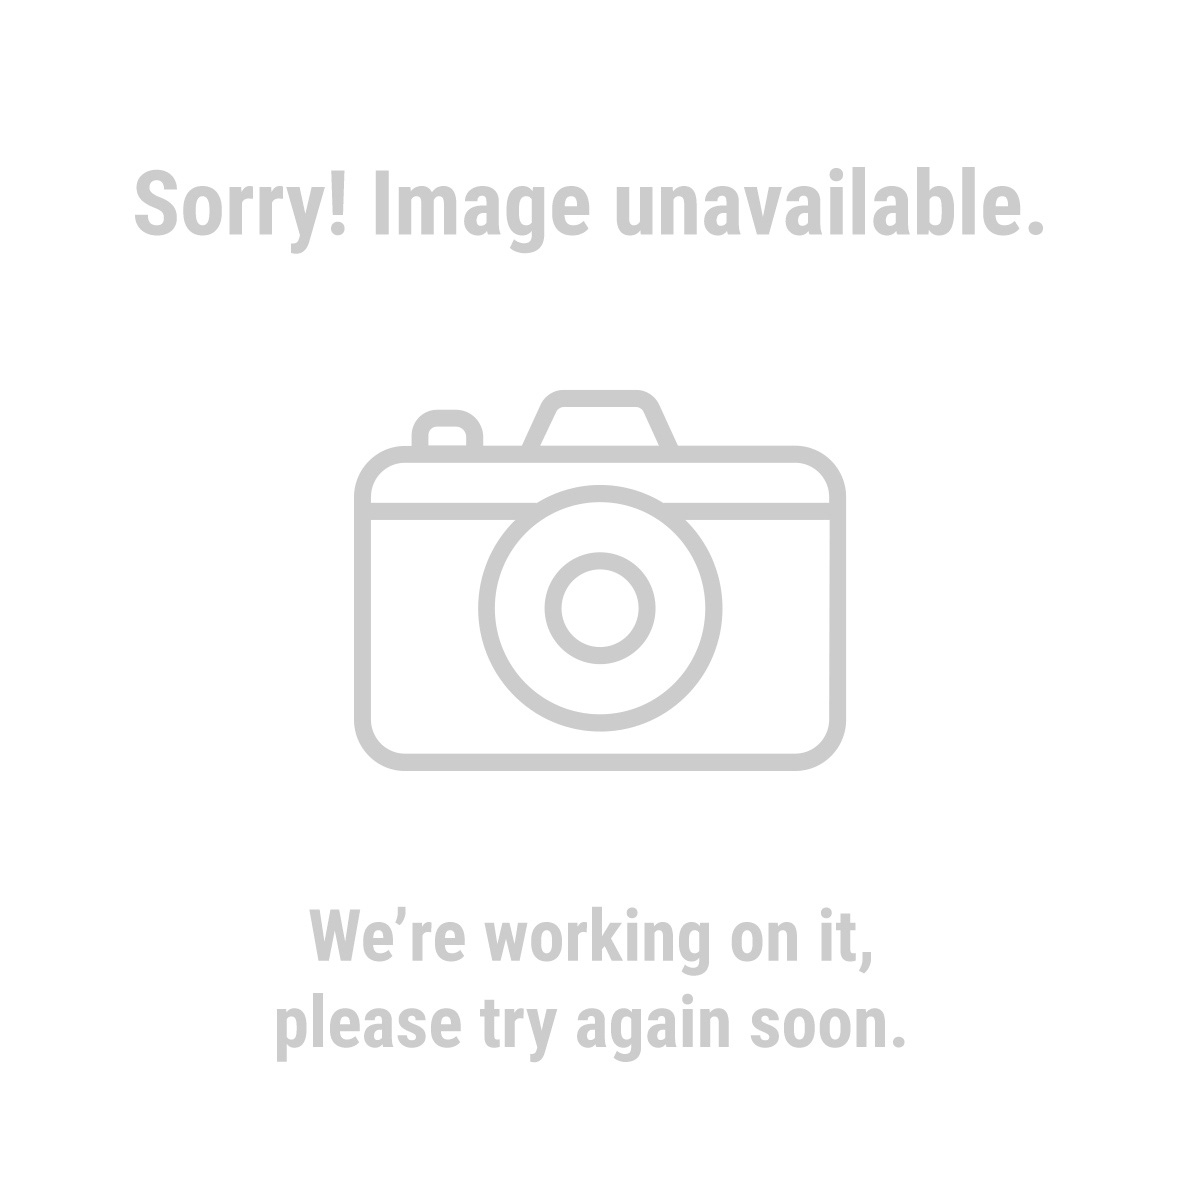 Western Safety 94877 2 Piece Yellow Rain Suit, Medium